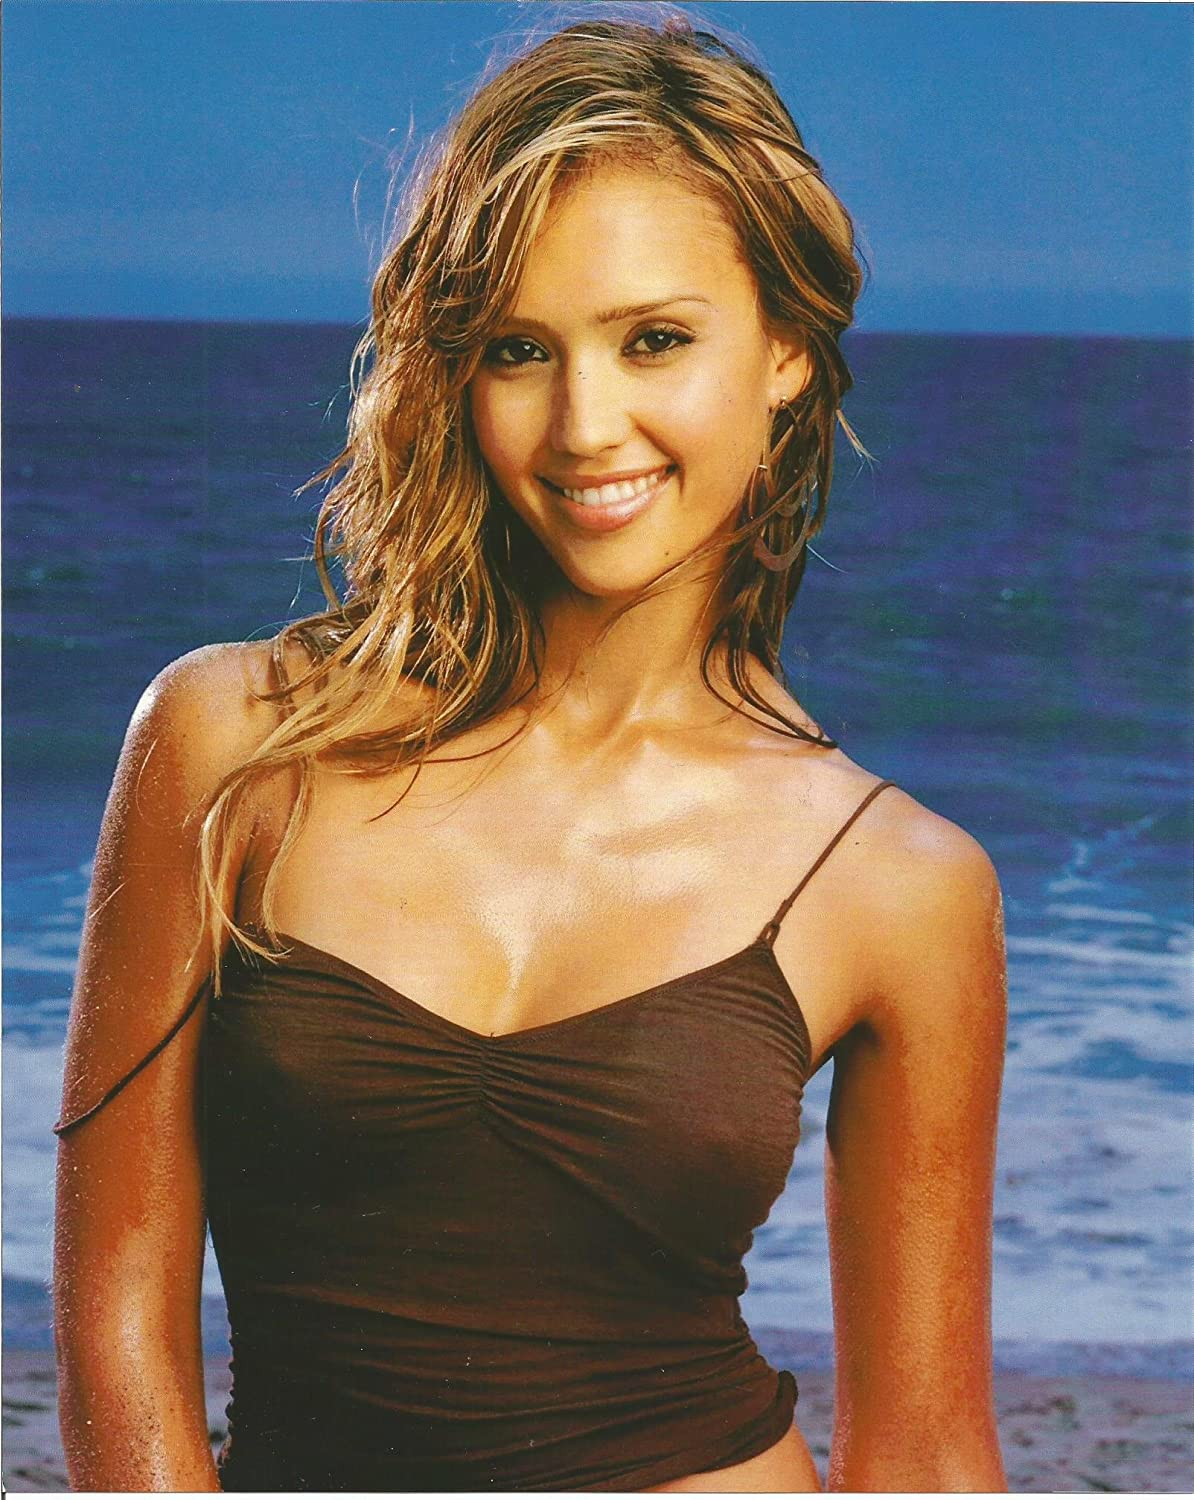 Jessica Alba Into The Blue Tight Tank Top 8 X 10 Photo 004 At Amazon S Entertainment Collectibles Store